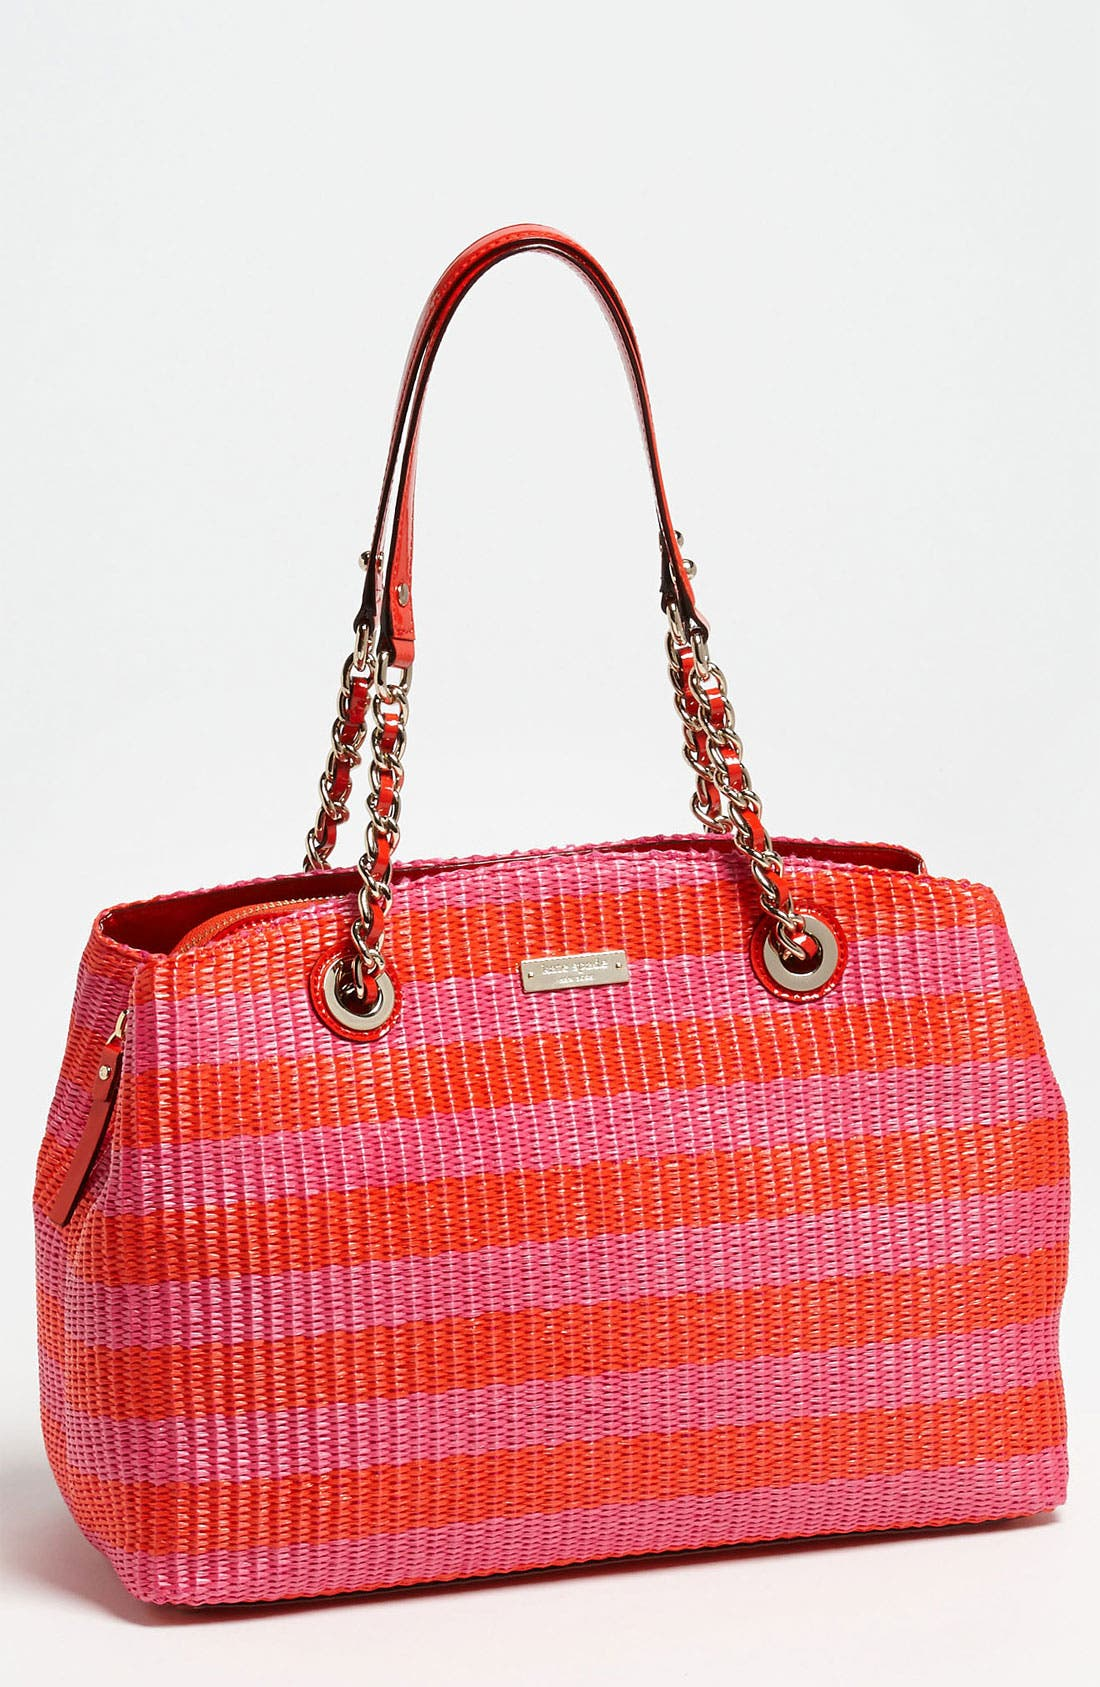 Main Image - kate spade new york 'pacific heights - sloan' raffia shoulder bag